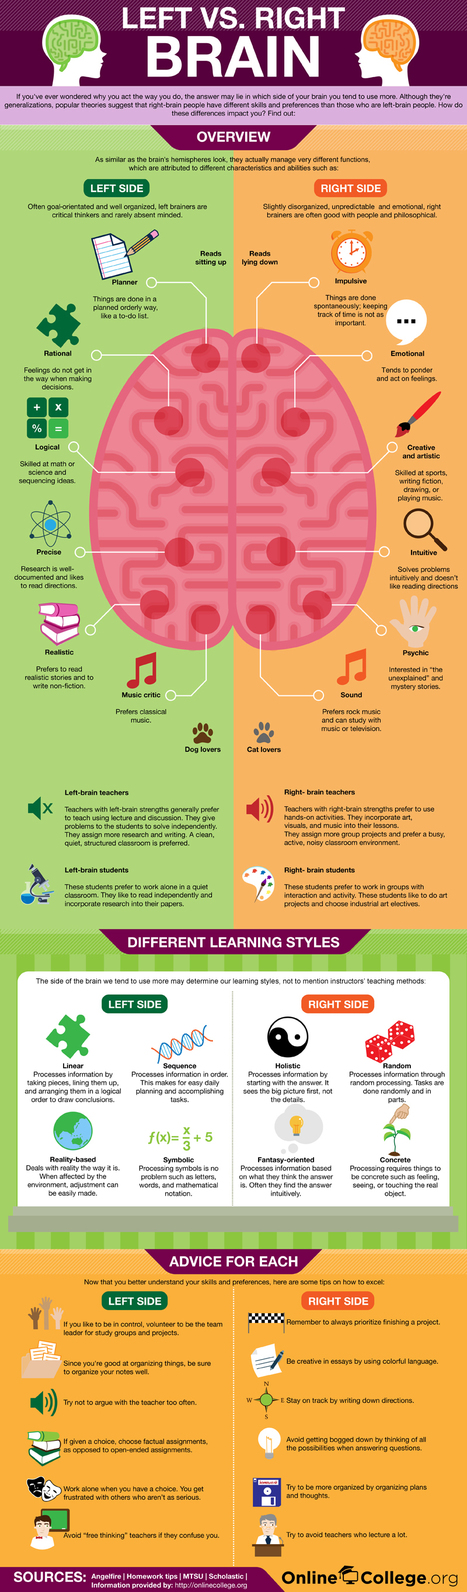 Are You Left or Right Brain? [Infographic] | Trucs, Conseils et Astuces | Scoop.it